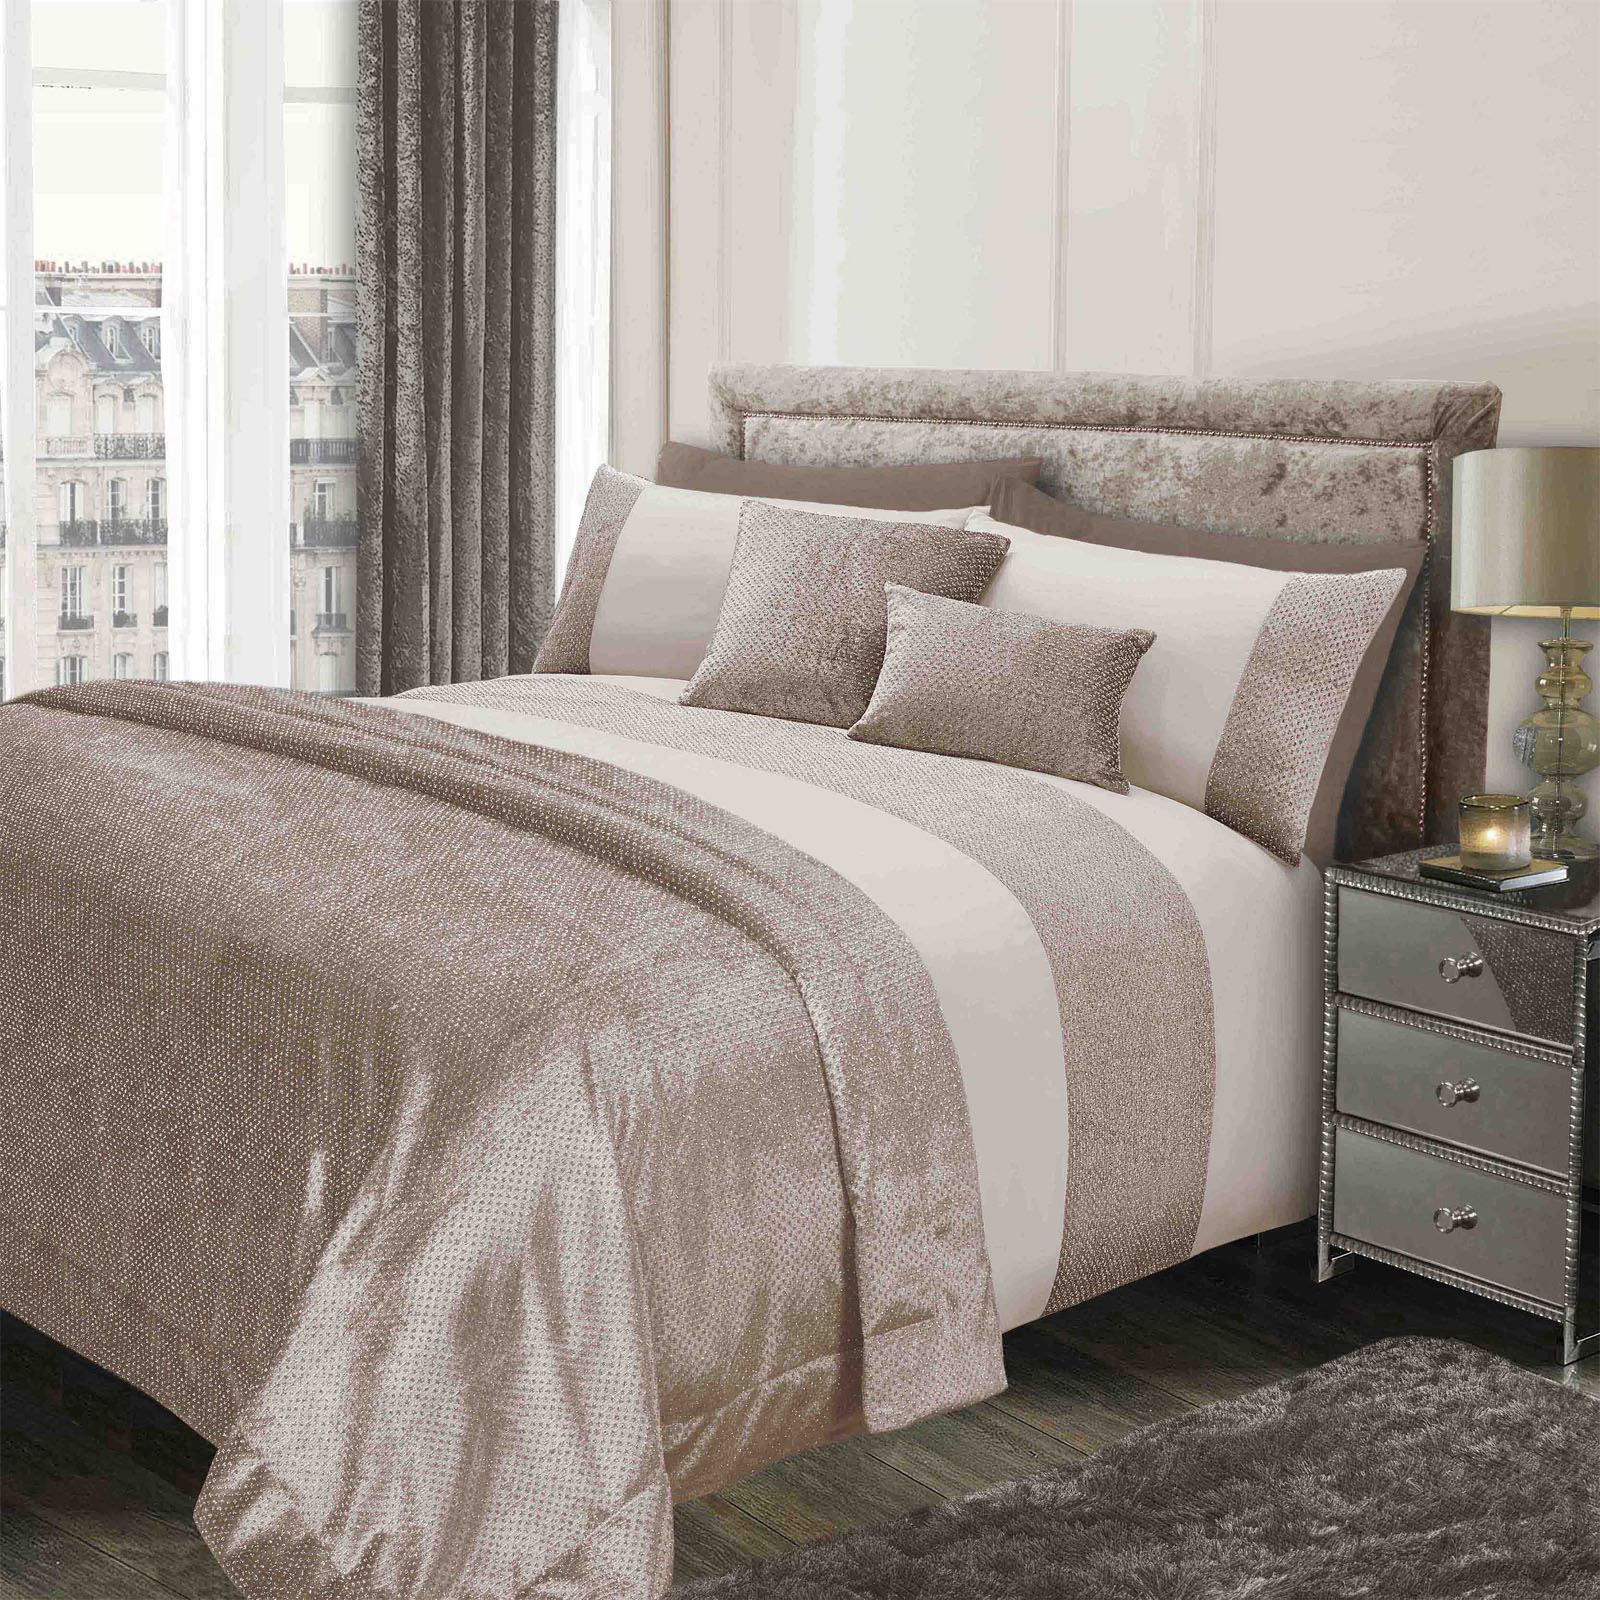 Sienna-Glitter-Duvet-Cover-with-Pillow-Case-Sparkle-Velvet-Bedding-Set-Grey-Pink thumbnail 10